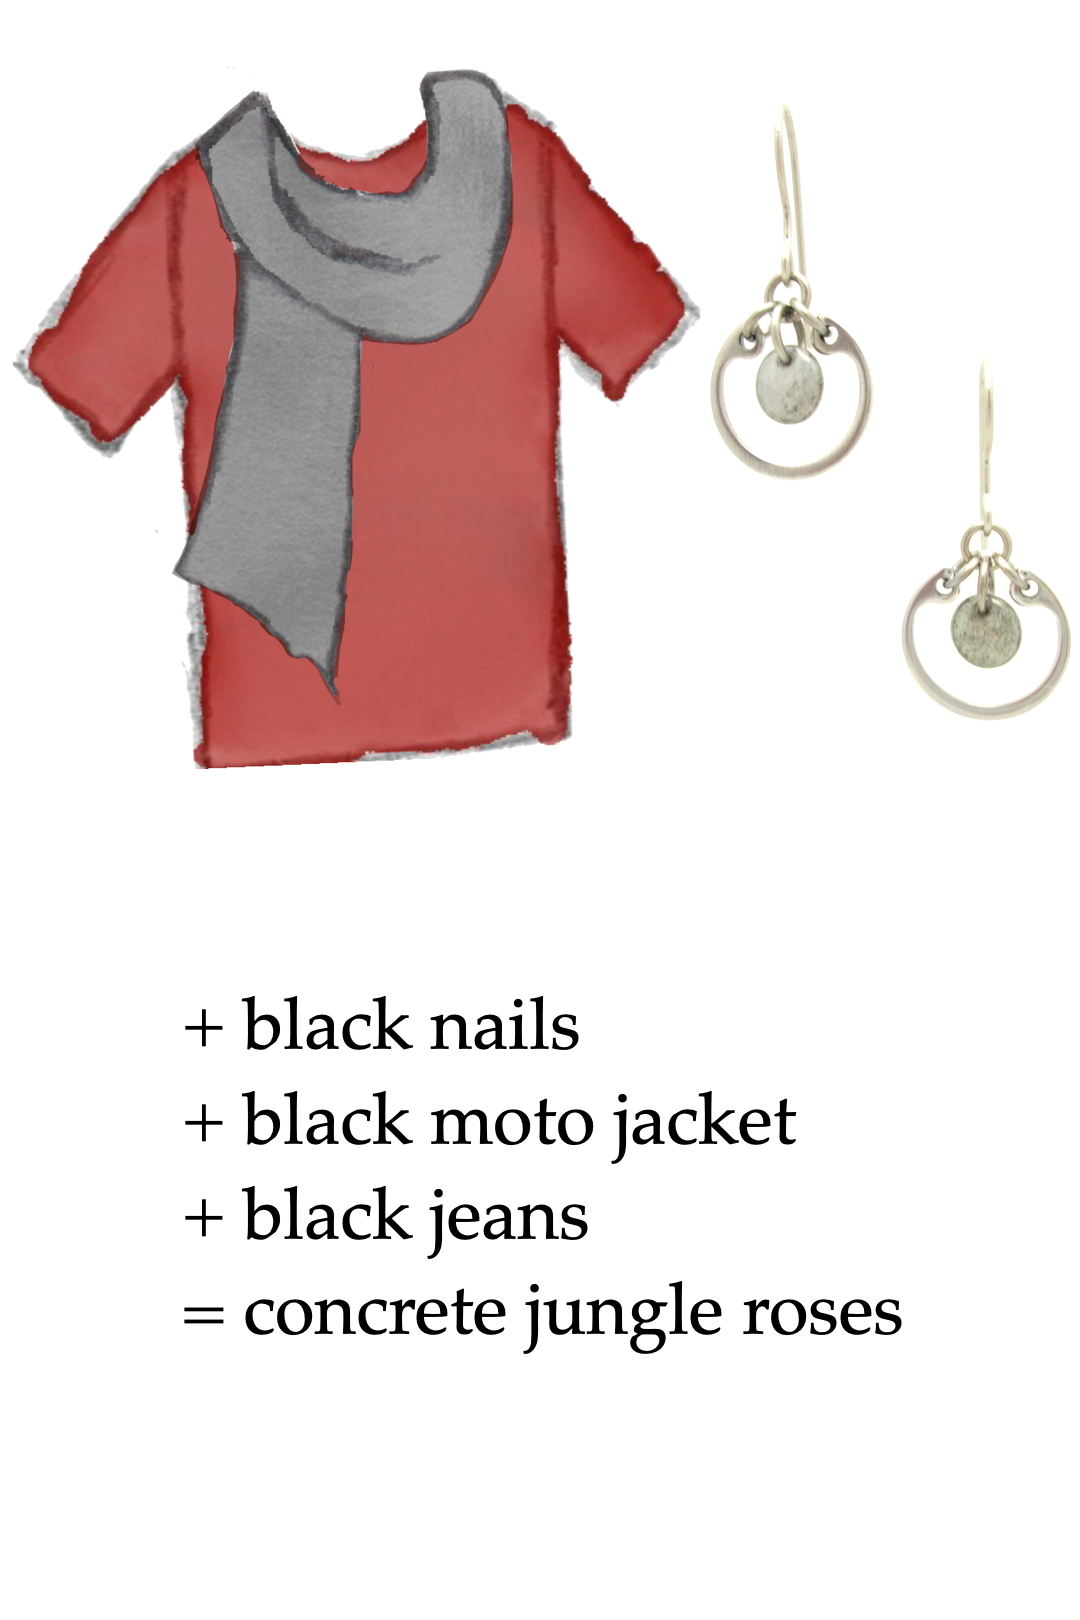 sketch of a red tee + gray scarf + small modern gray circle earrings; text says + black nails + black moto jacket + black jeans = concrete jungle roses